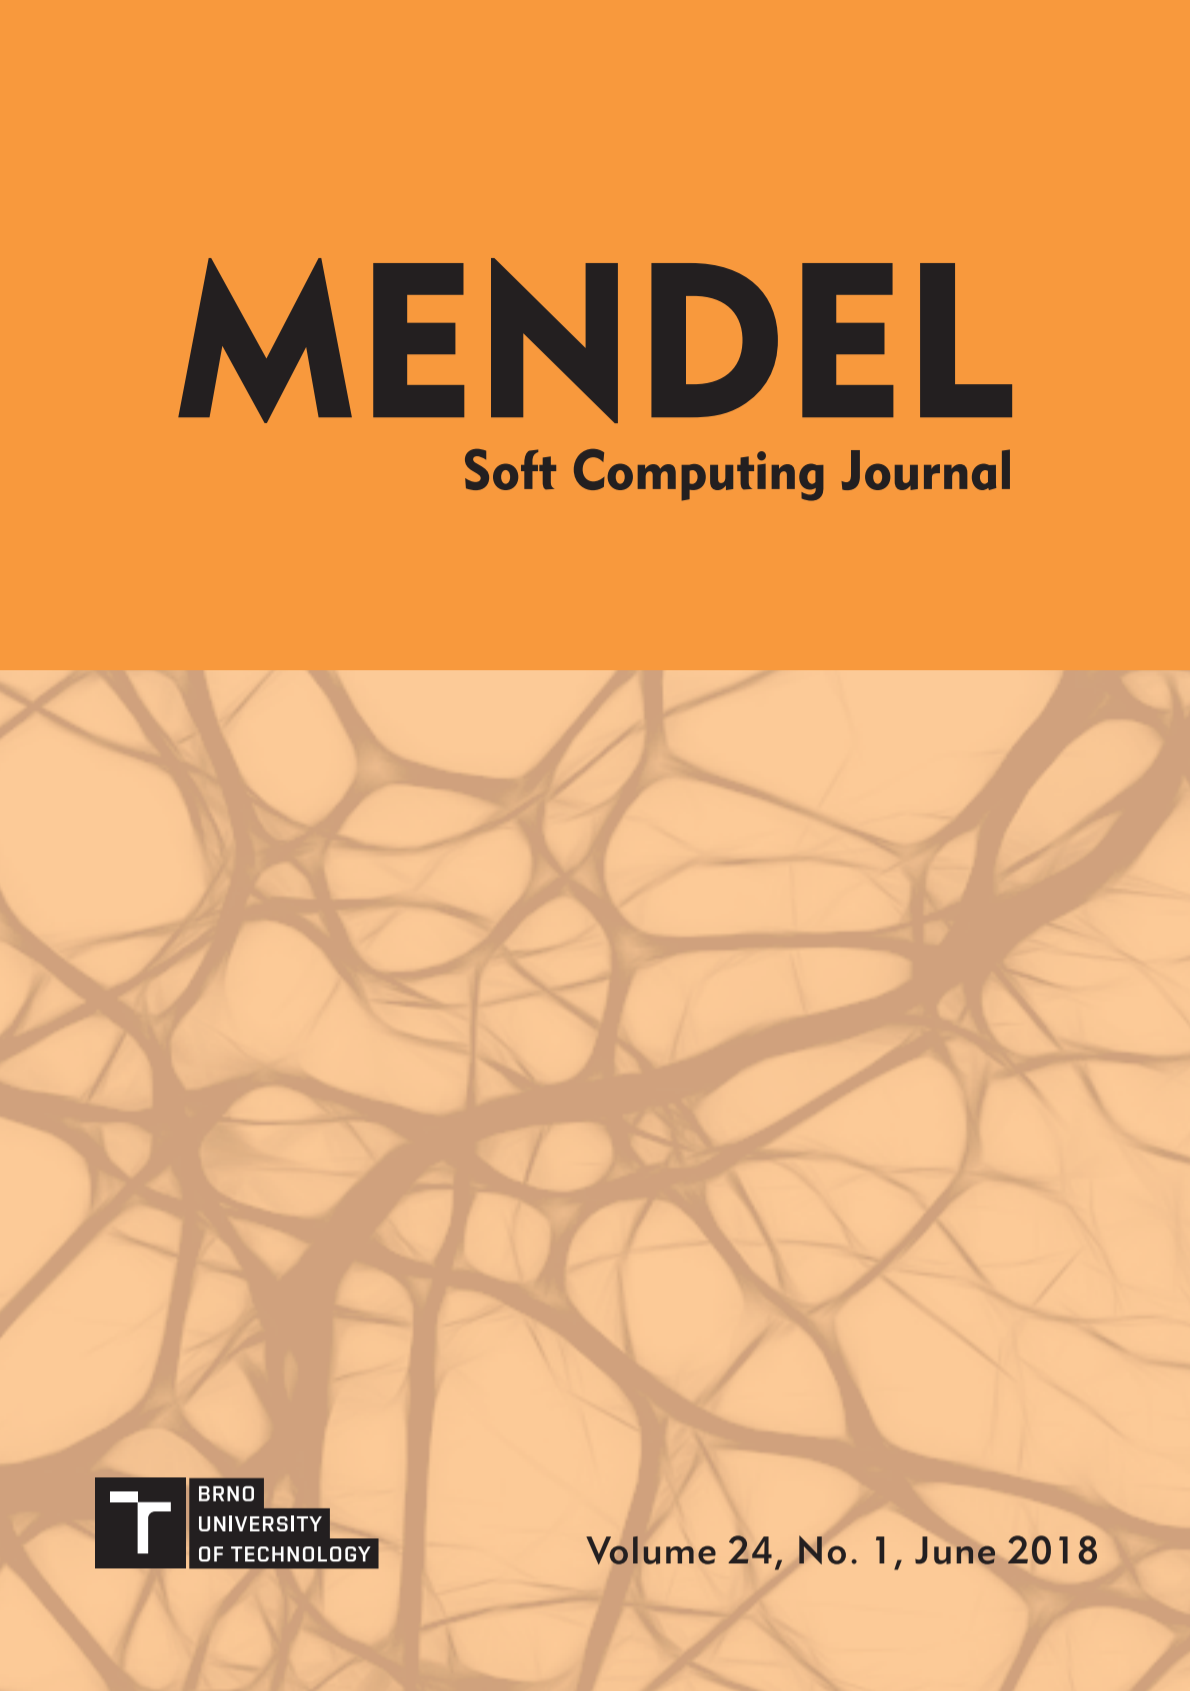 MENDEL Soft Computing Journal, Volume 24, No. 1, June 2018 - Cover